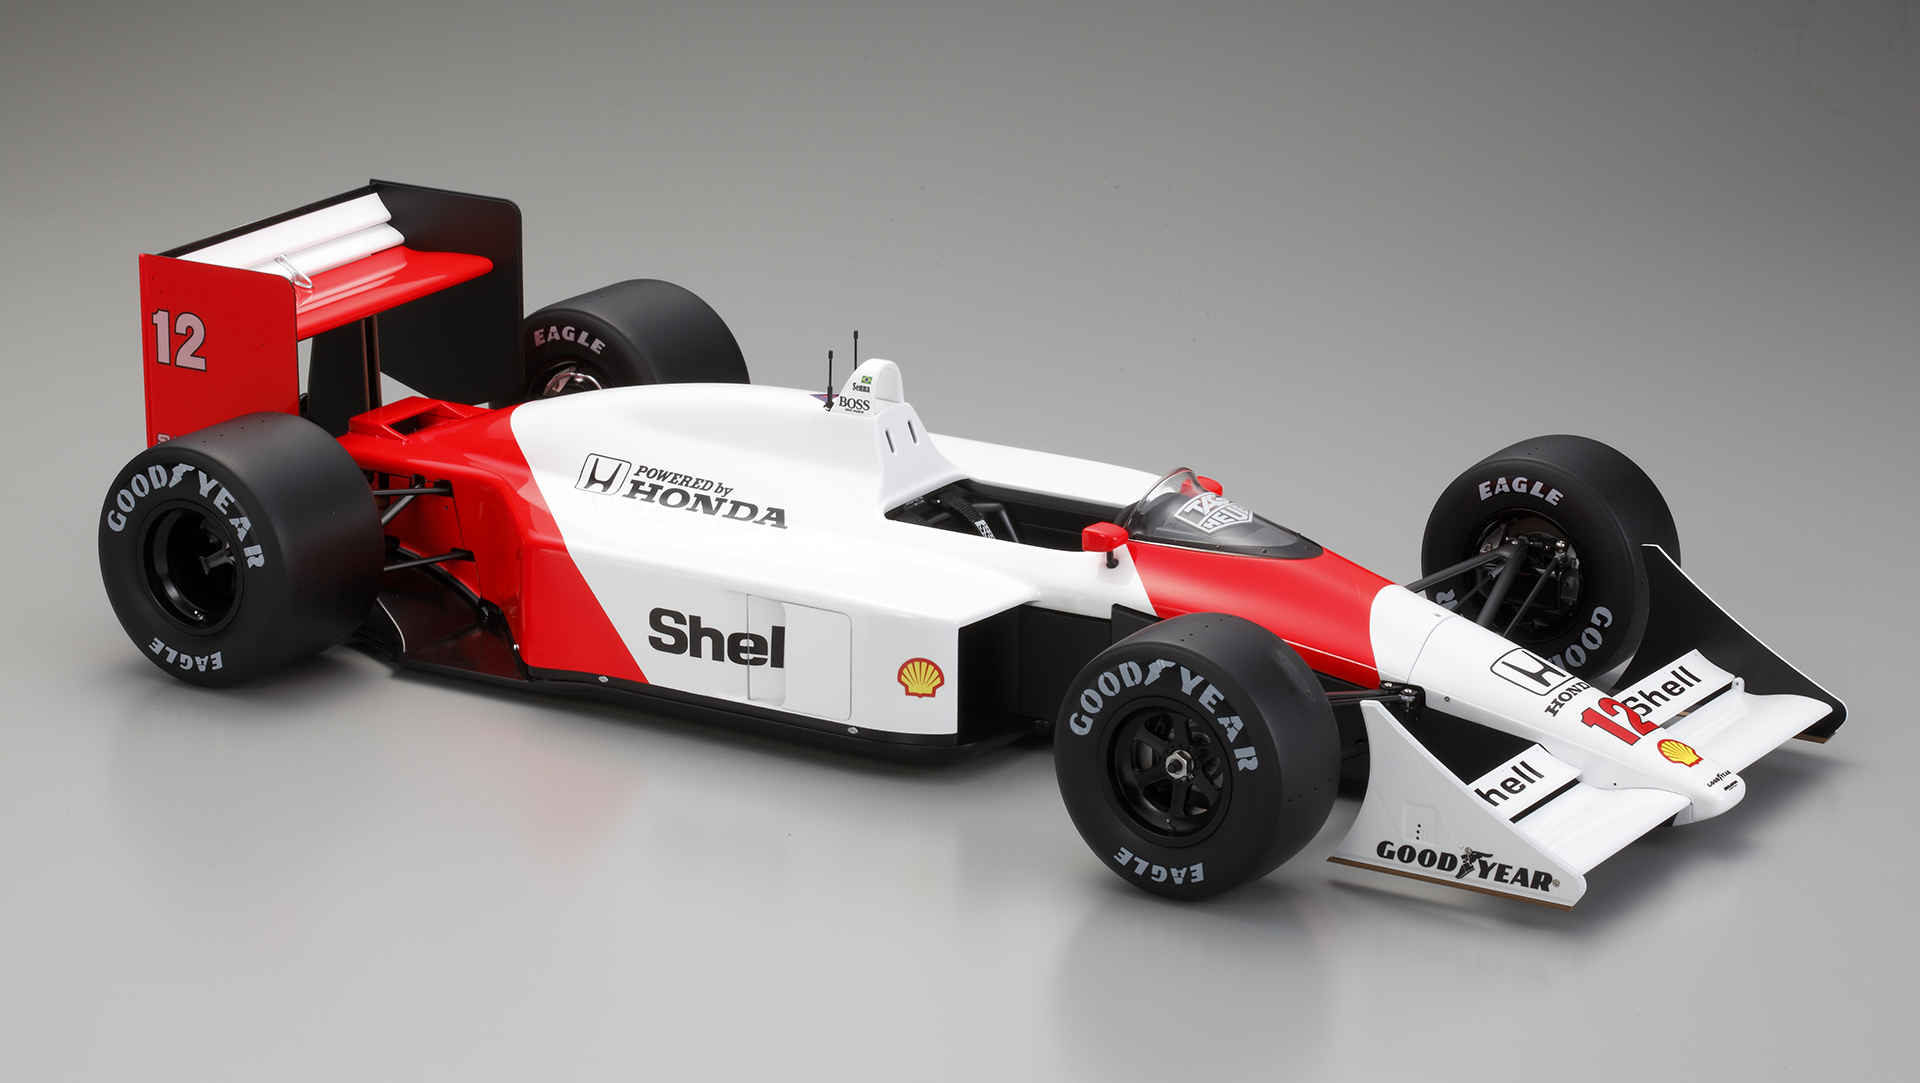 lego rc with Formula 1 1988 Ayrton Senna And The Mclaren Mp44s Dominance on 134122895131634194 additionally 42076 besides D25 furthermore Ax90044 together with Berlin0.